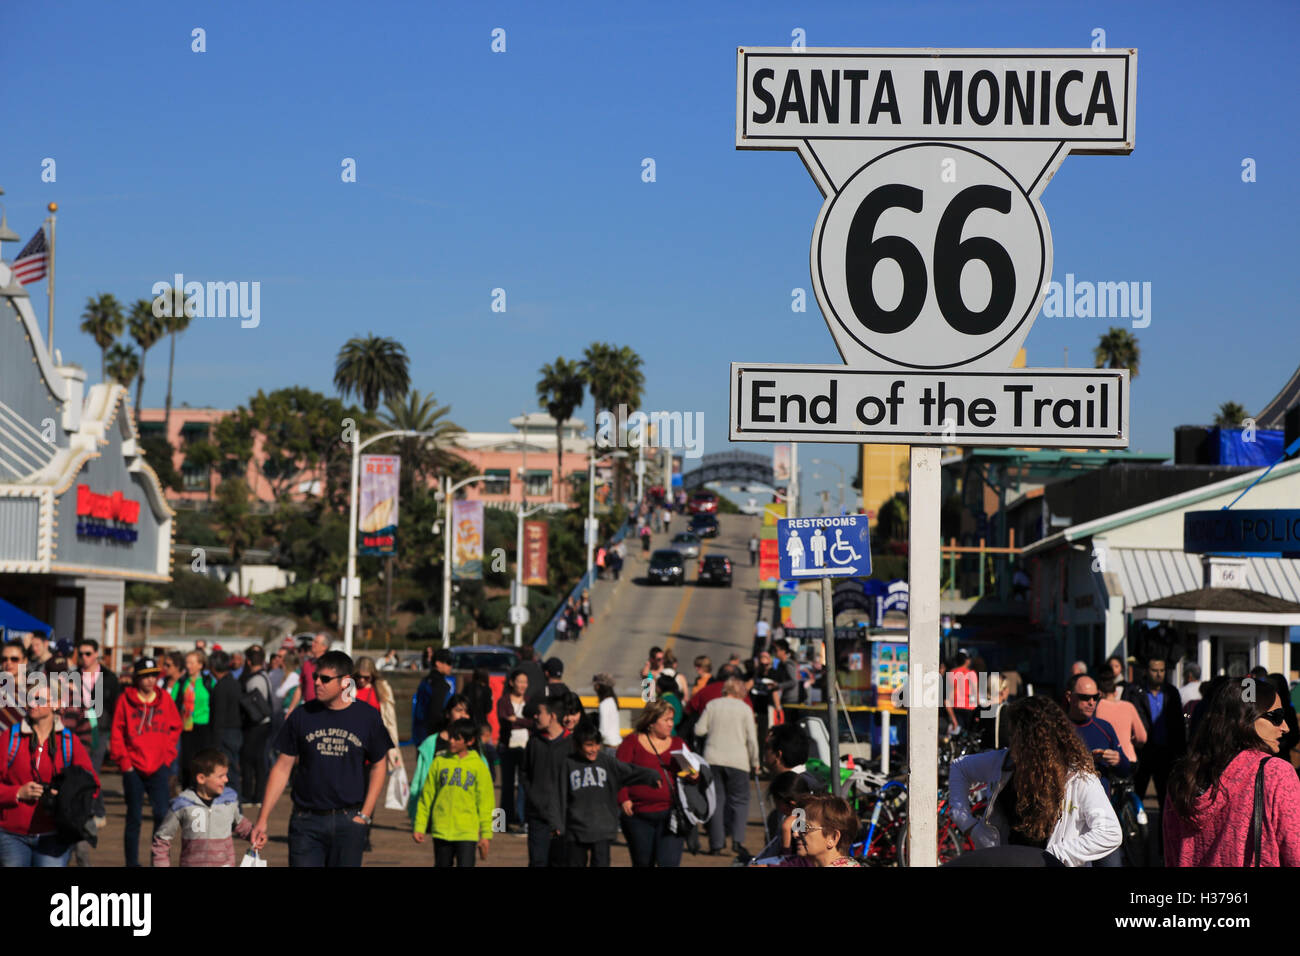 route 66 end of the trail at santa monica sign in santa monica stock